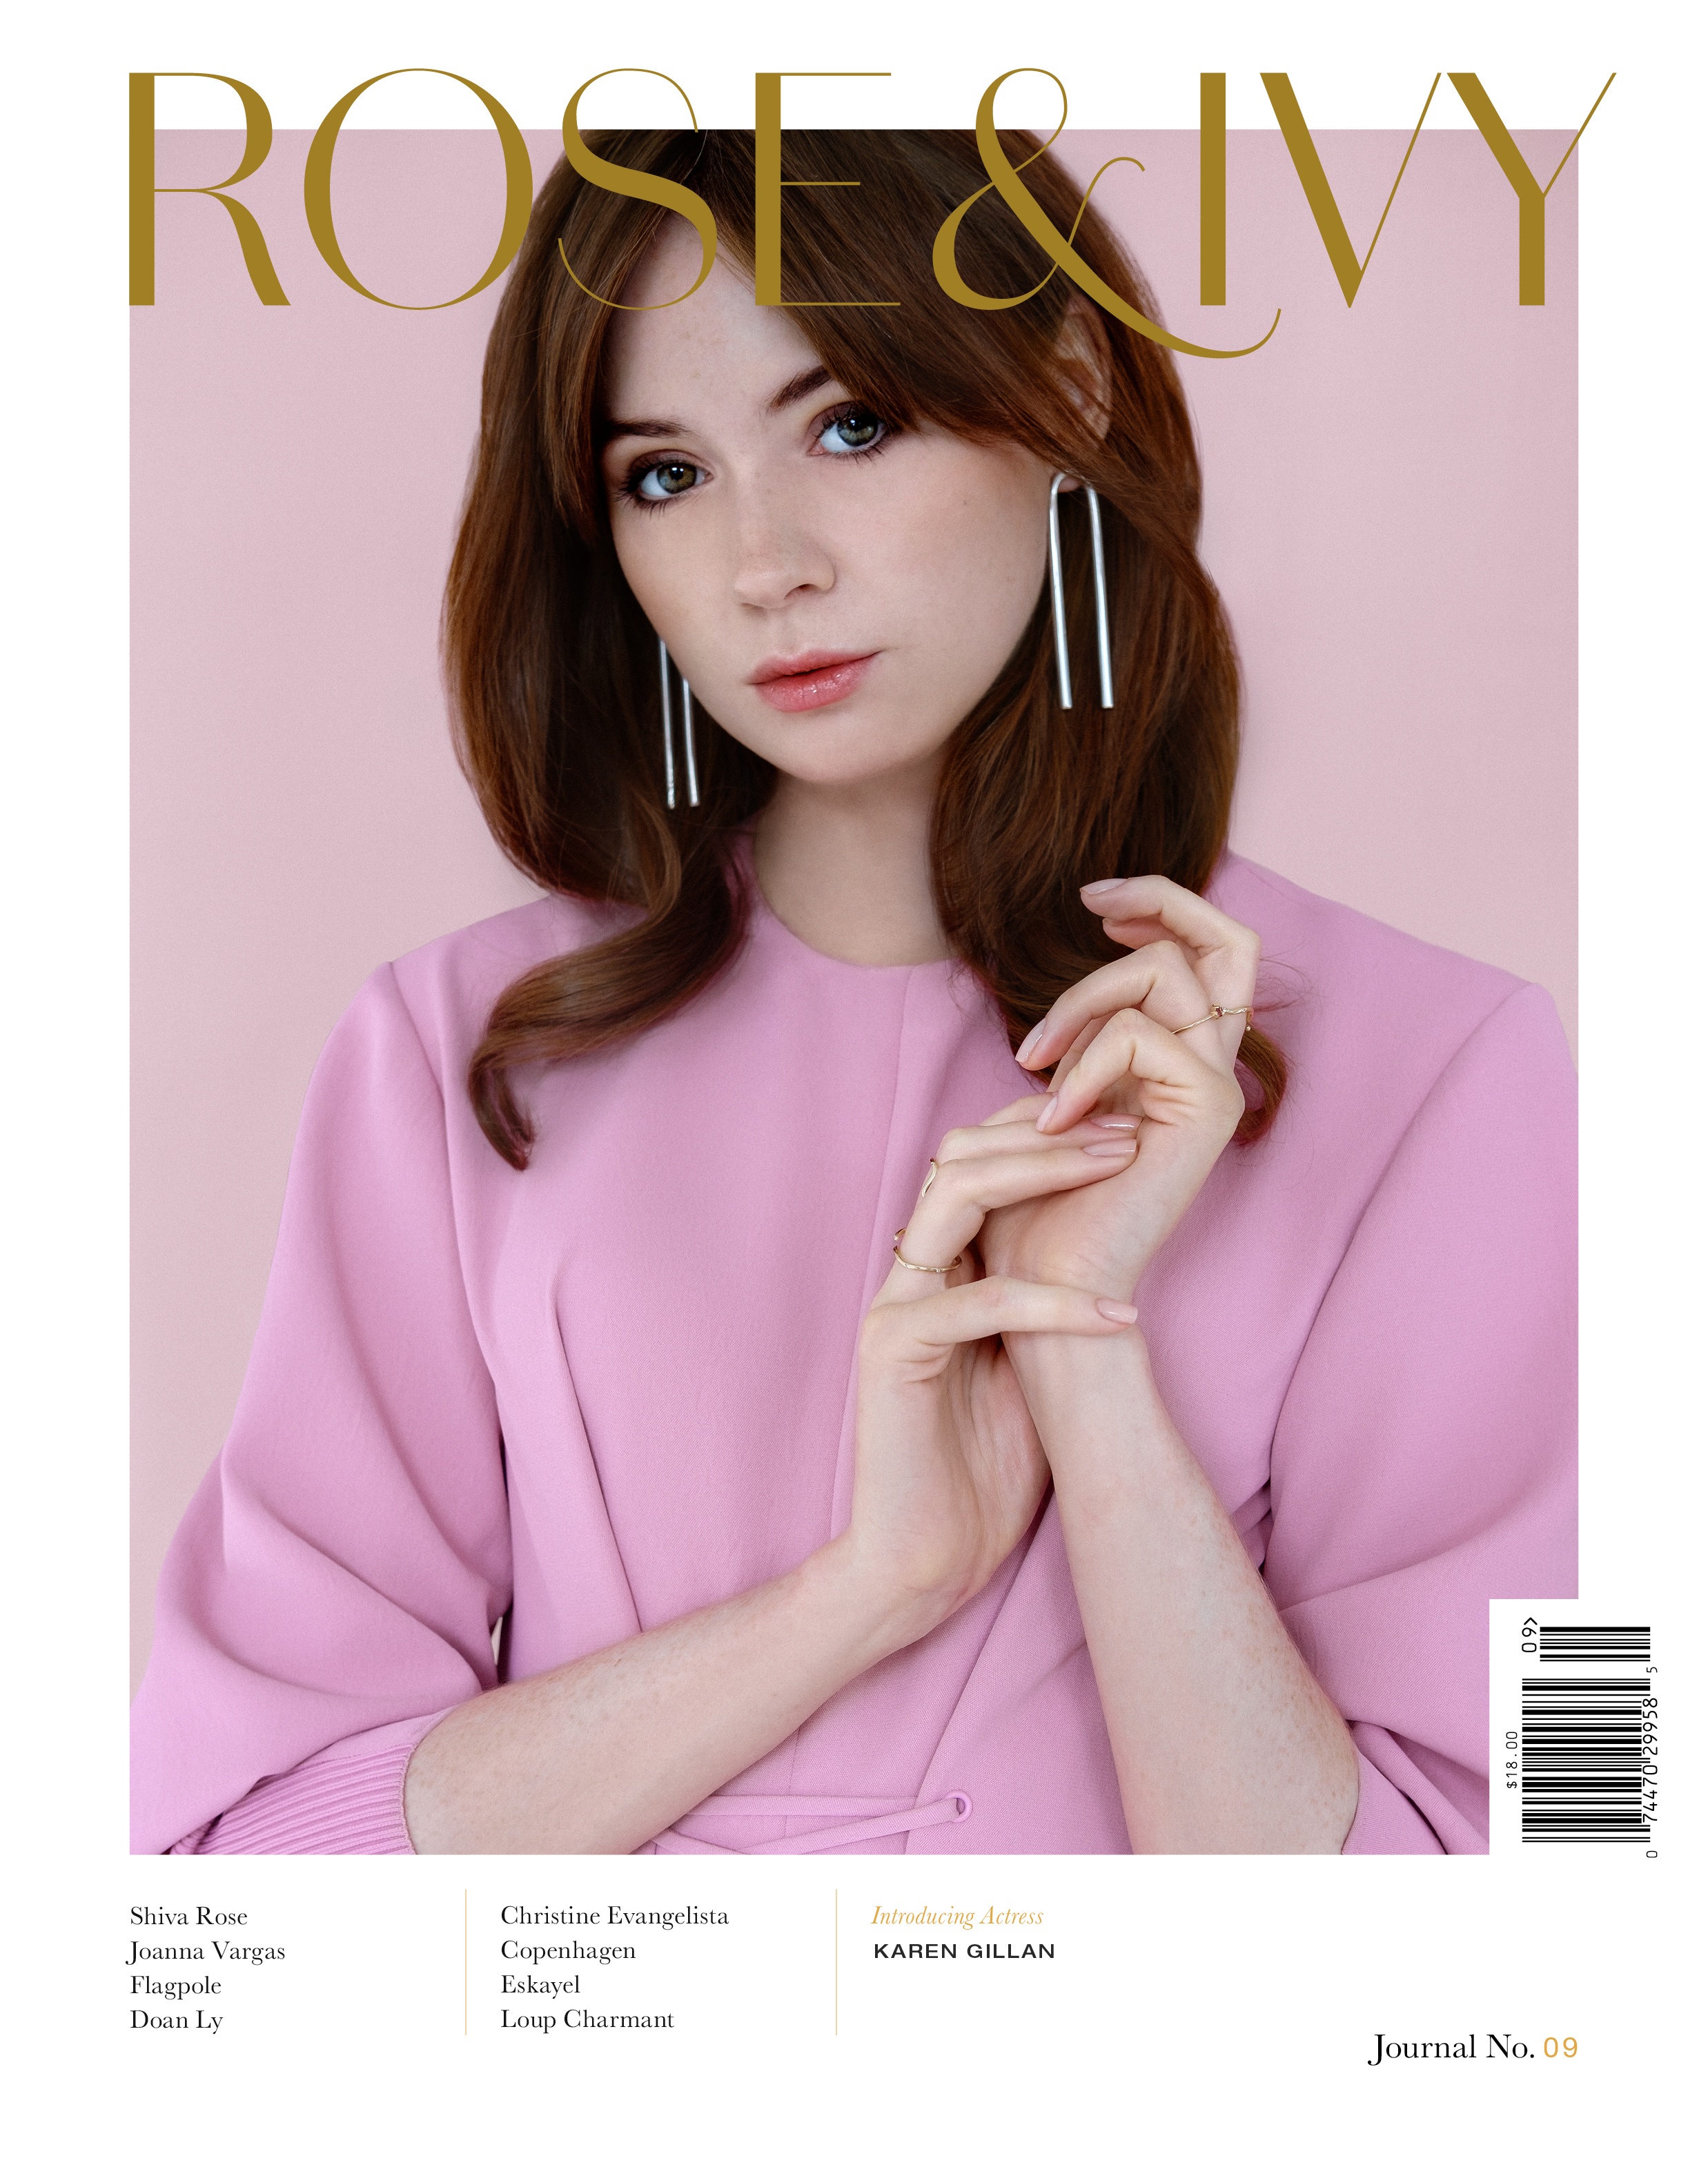 Pre-Order ROSE & IVY Journal Issue No.09